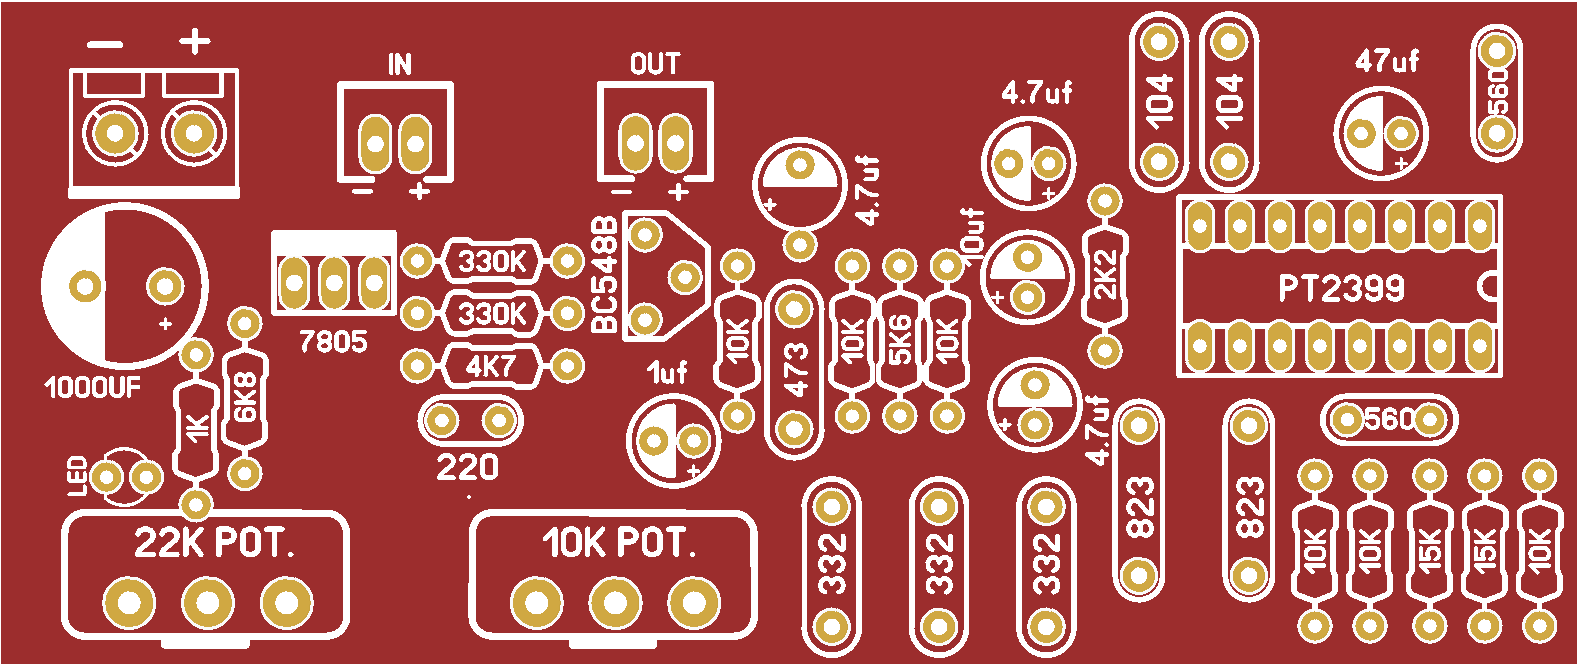 Echo Effect Preamp Board for Microphone with PT2399 IC DIY